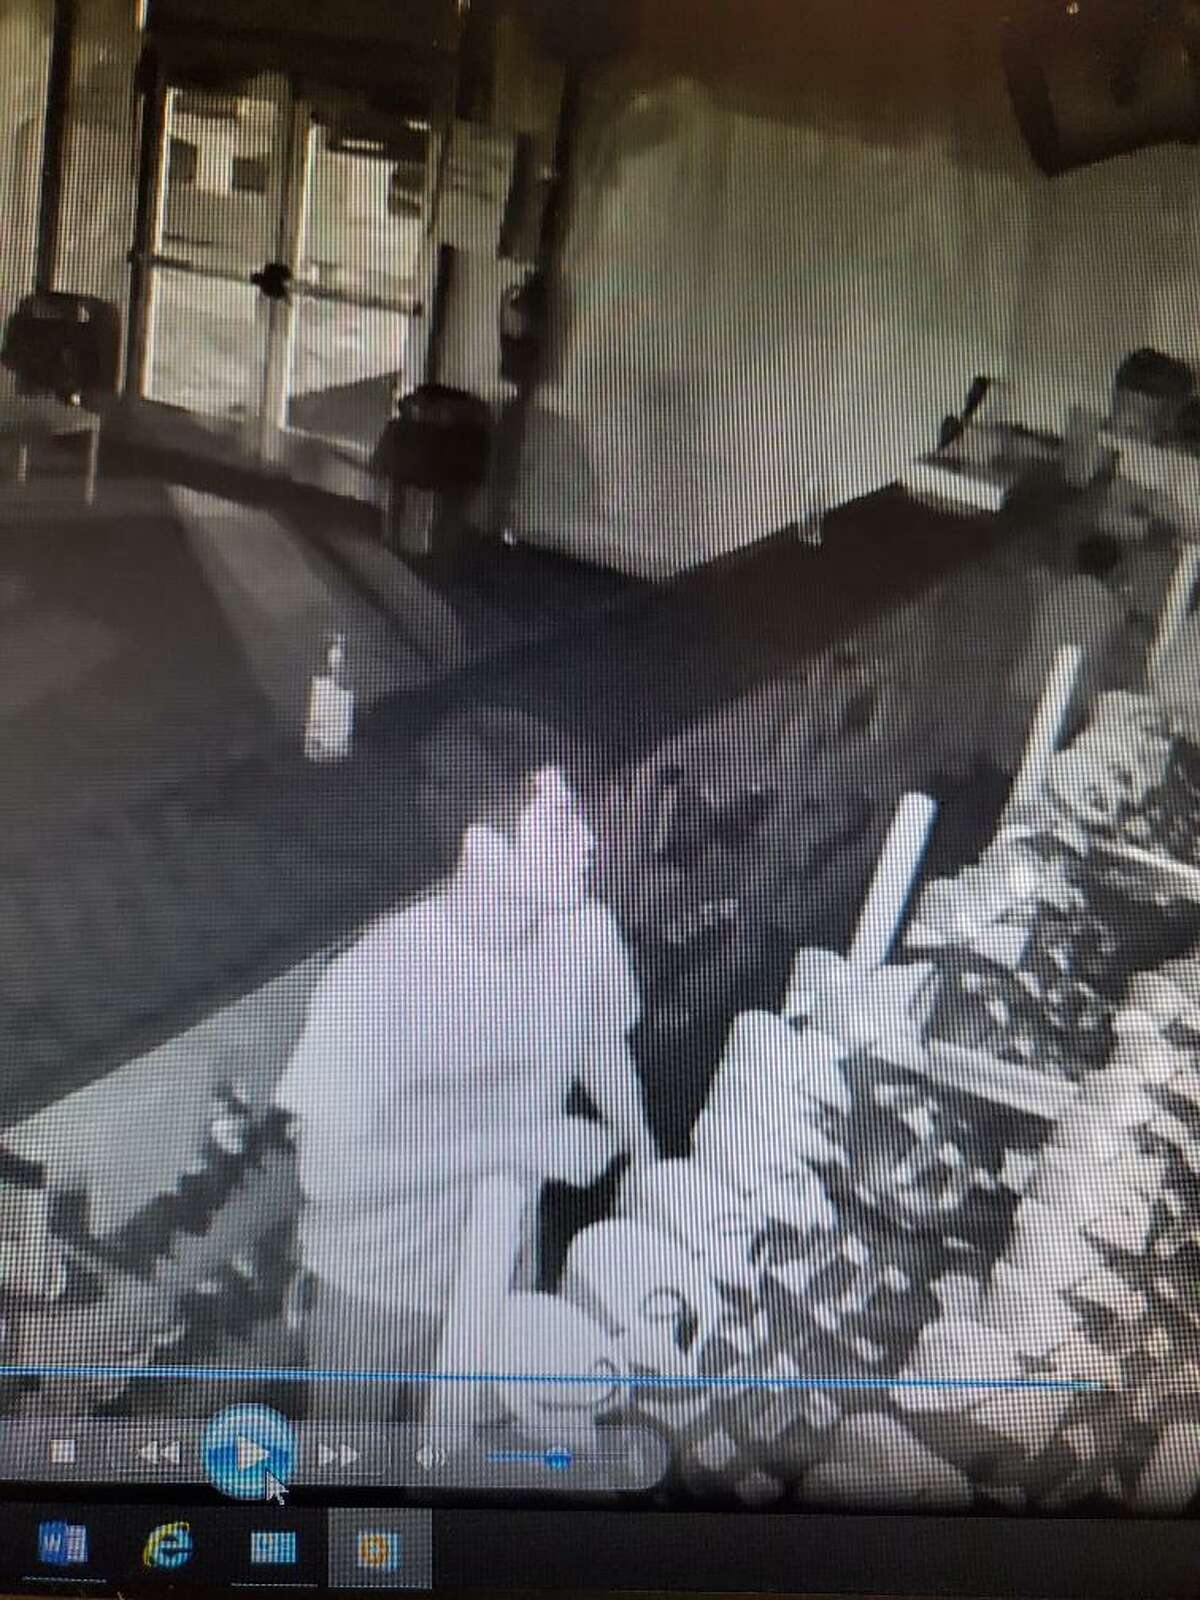 Police are asking the public for help in identifying these young men who sneaked into the Mill River Skating Rink last week.